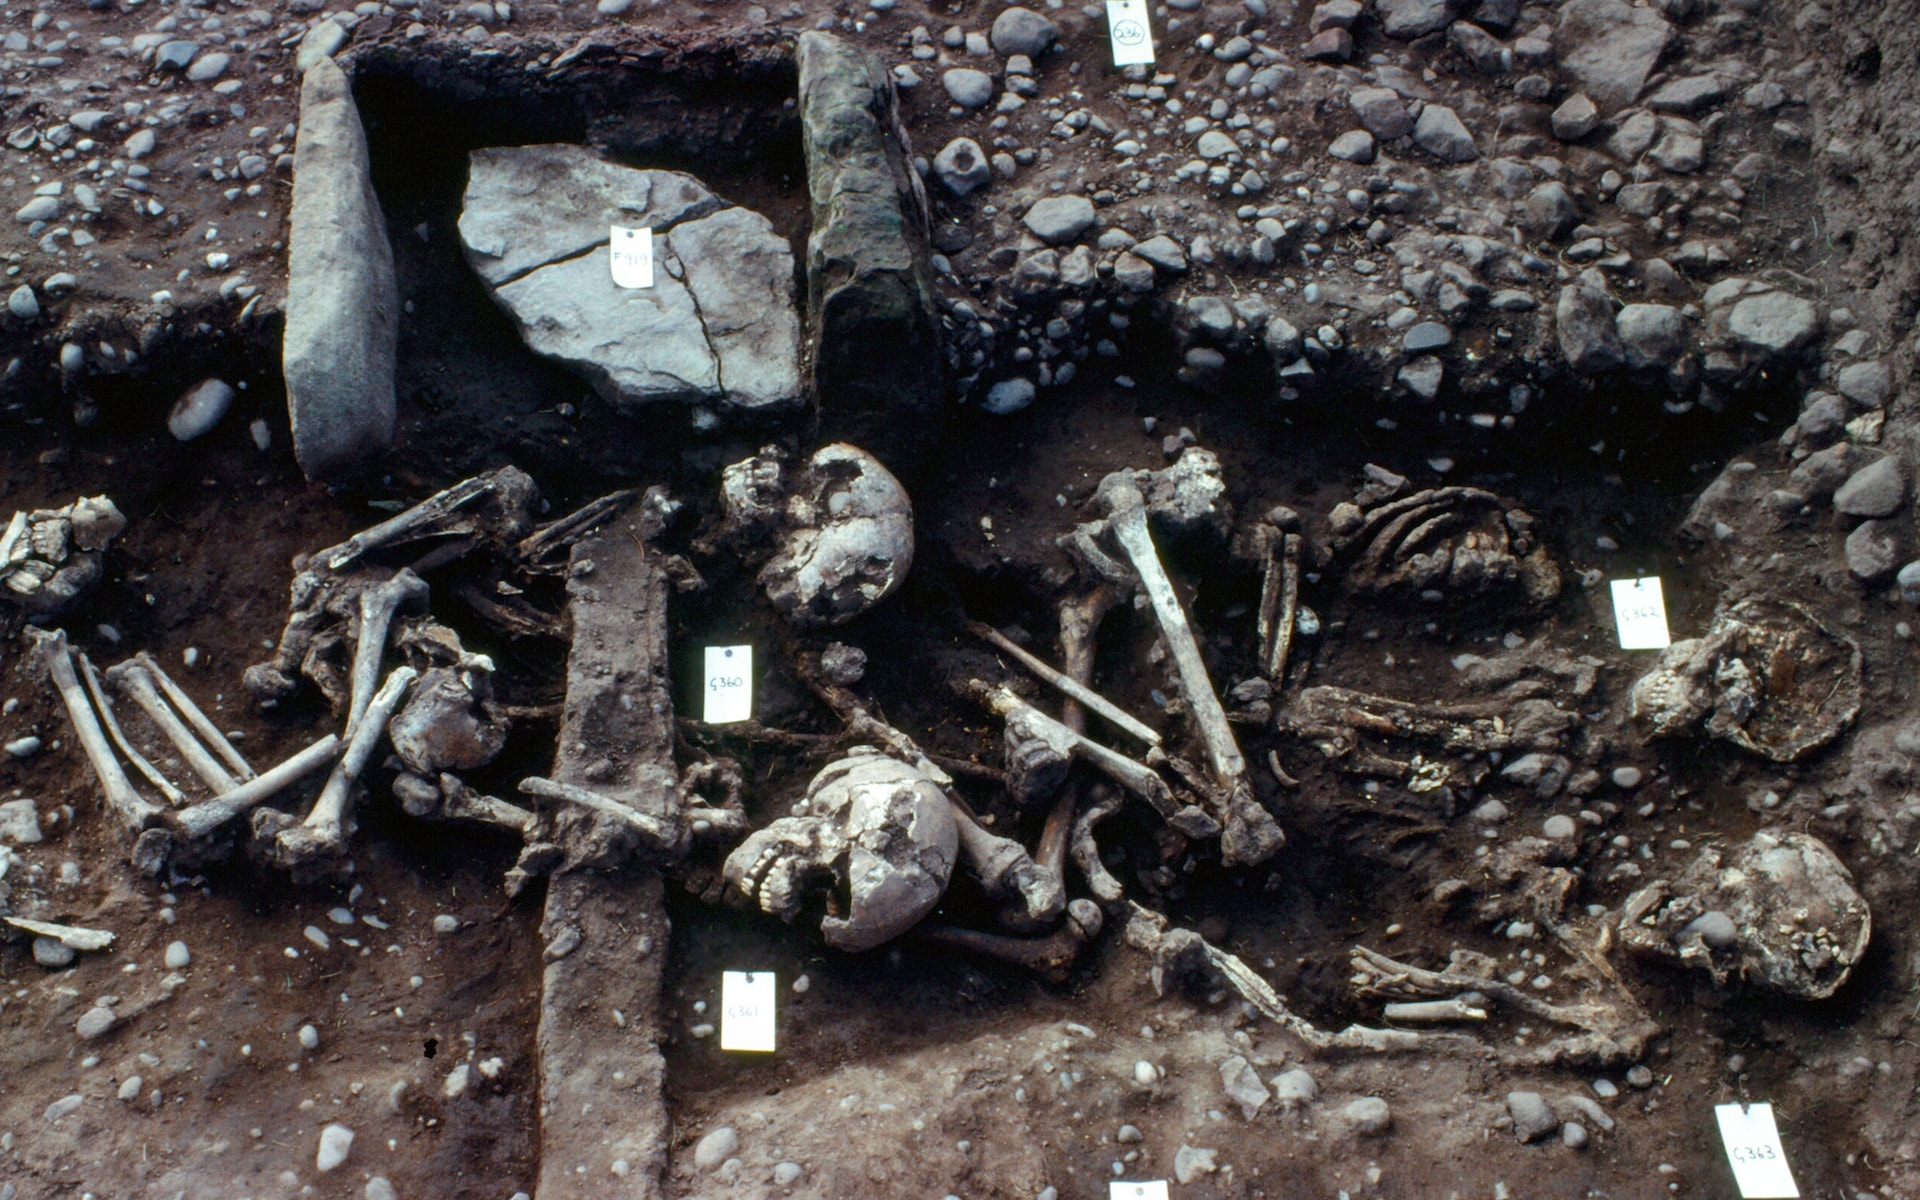 Mass grave of Viking army contained slaughtered children to help dead reach afterlife, experts believe